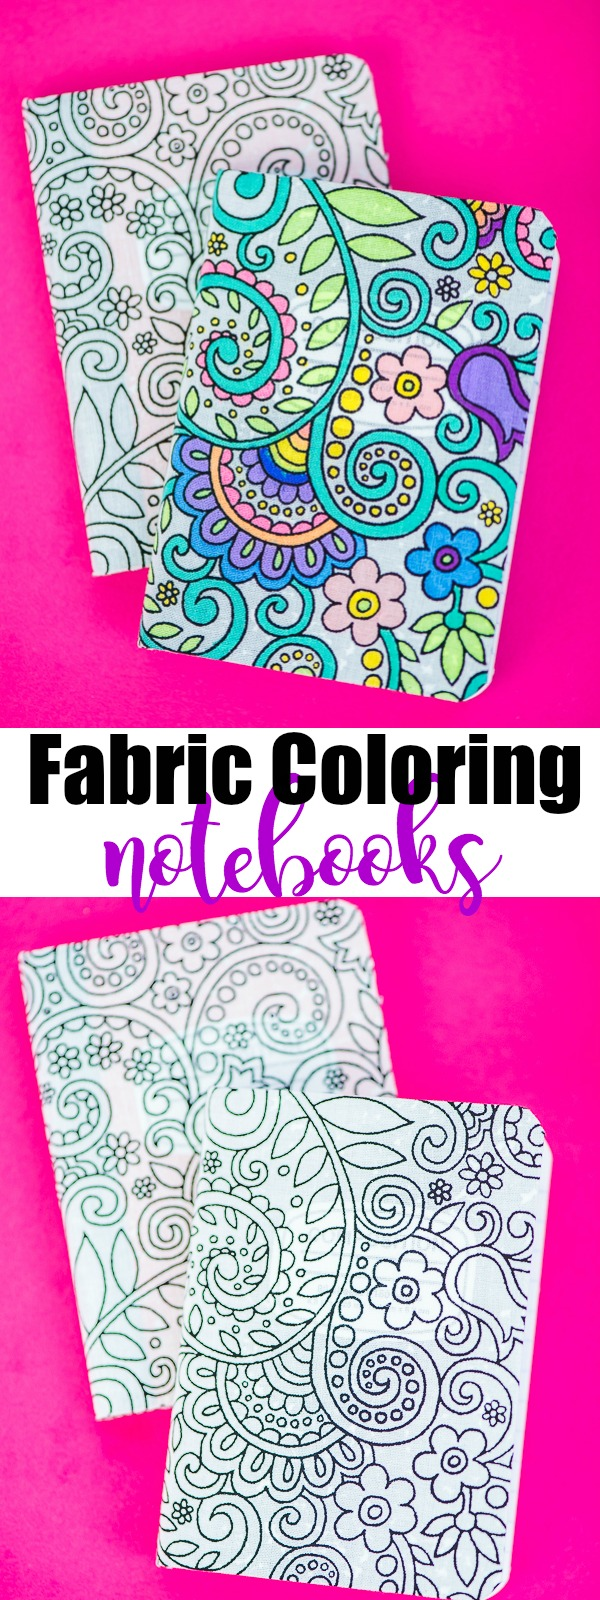 DIY Fabric Coloring Notebook Made With Adhesive Sheets And Markers